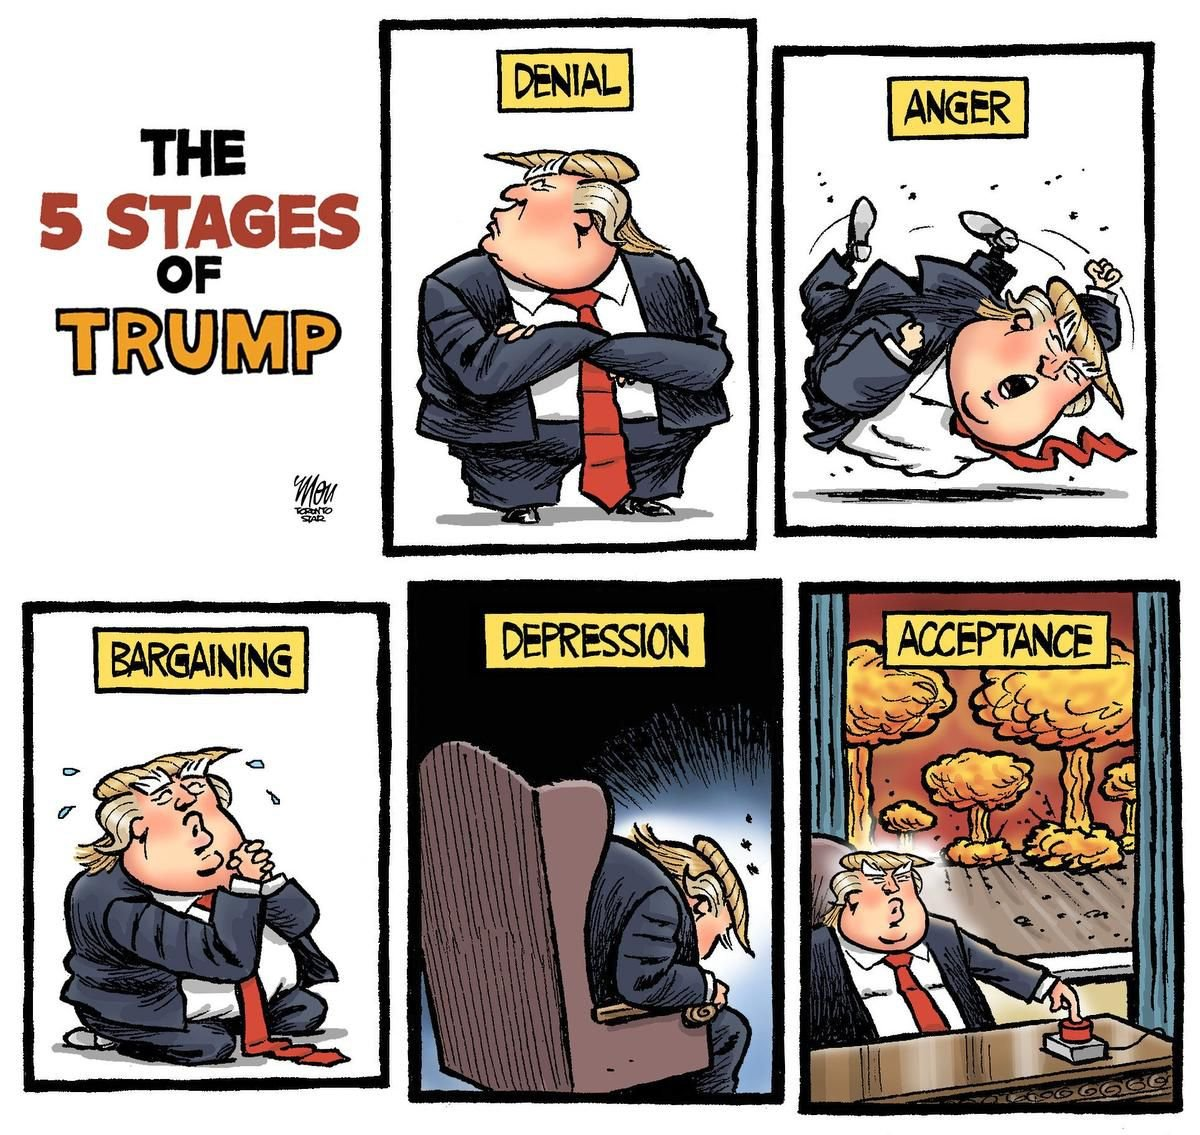 #DonaldTrump, the #BestPresident of the United States of Denial and Banana Republic of #MAGA Fools. Just like he bankrupted a casino, #DiaperDon truned #GOP into Gang Of Psychos then bankrupted it, it lost the House, Senate & Presidency. #LoserOfTheCentury #loseroftheyear #BeGone